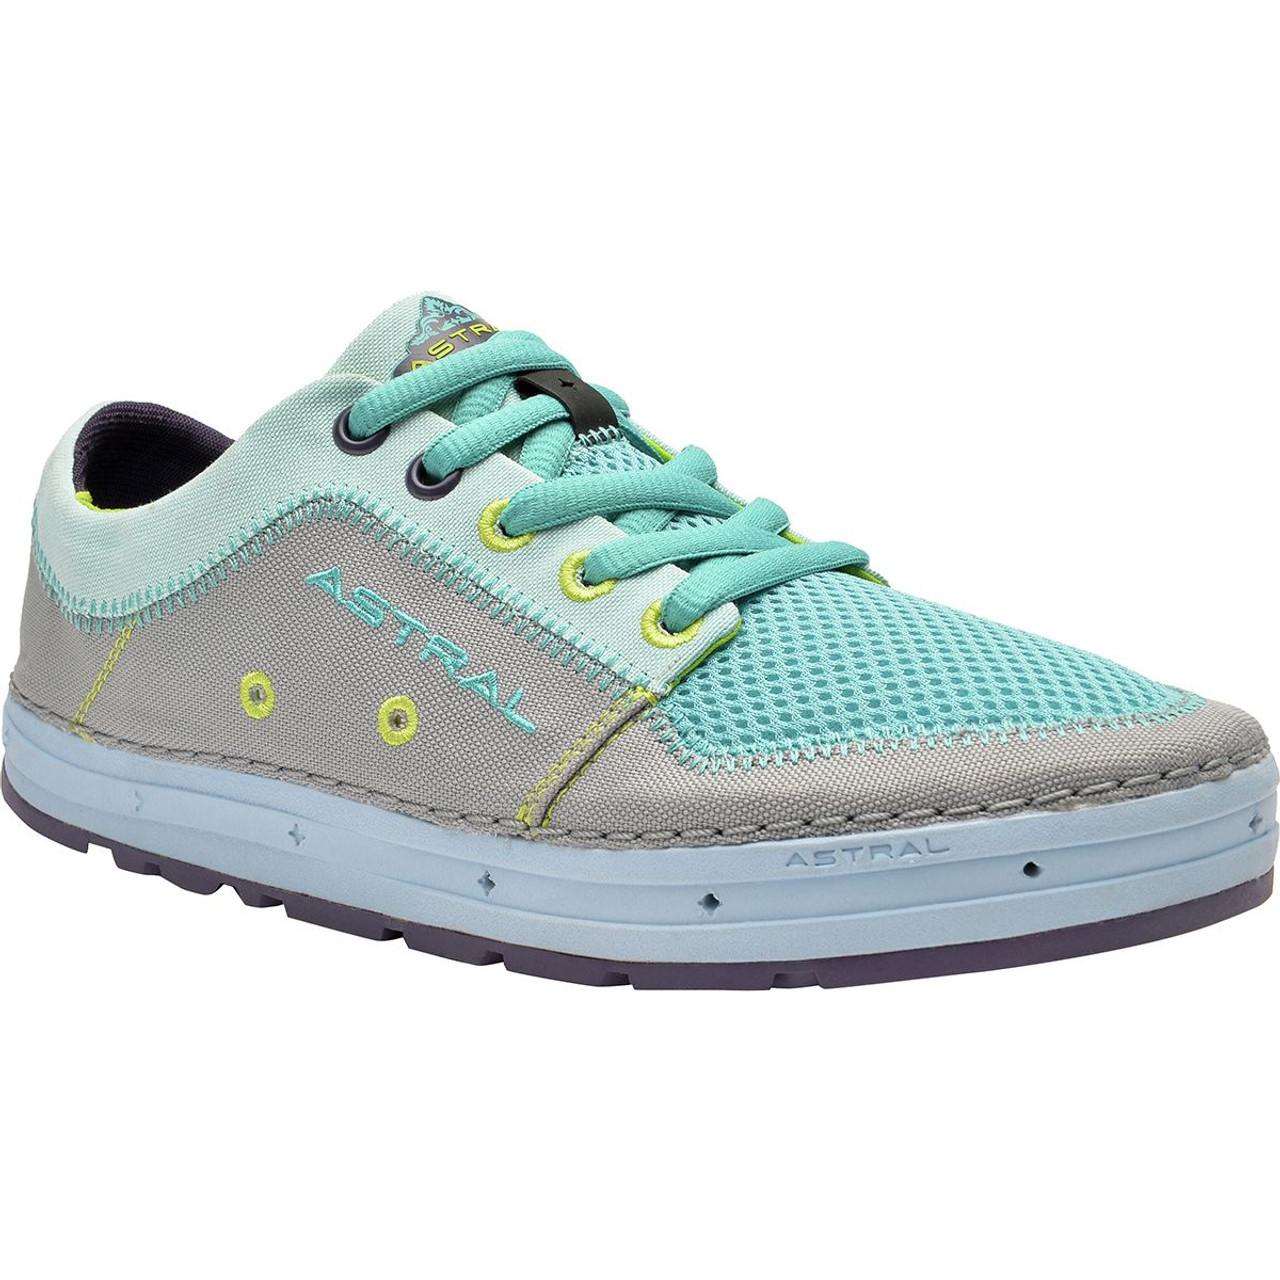 dcc7d1a0d513 ... Astral Brewer 2.0 Shoes Womens Turqoise Gray